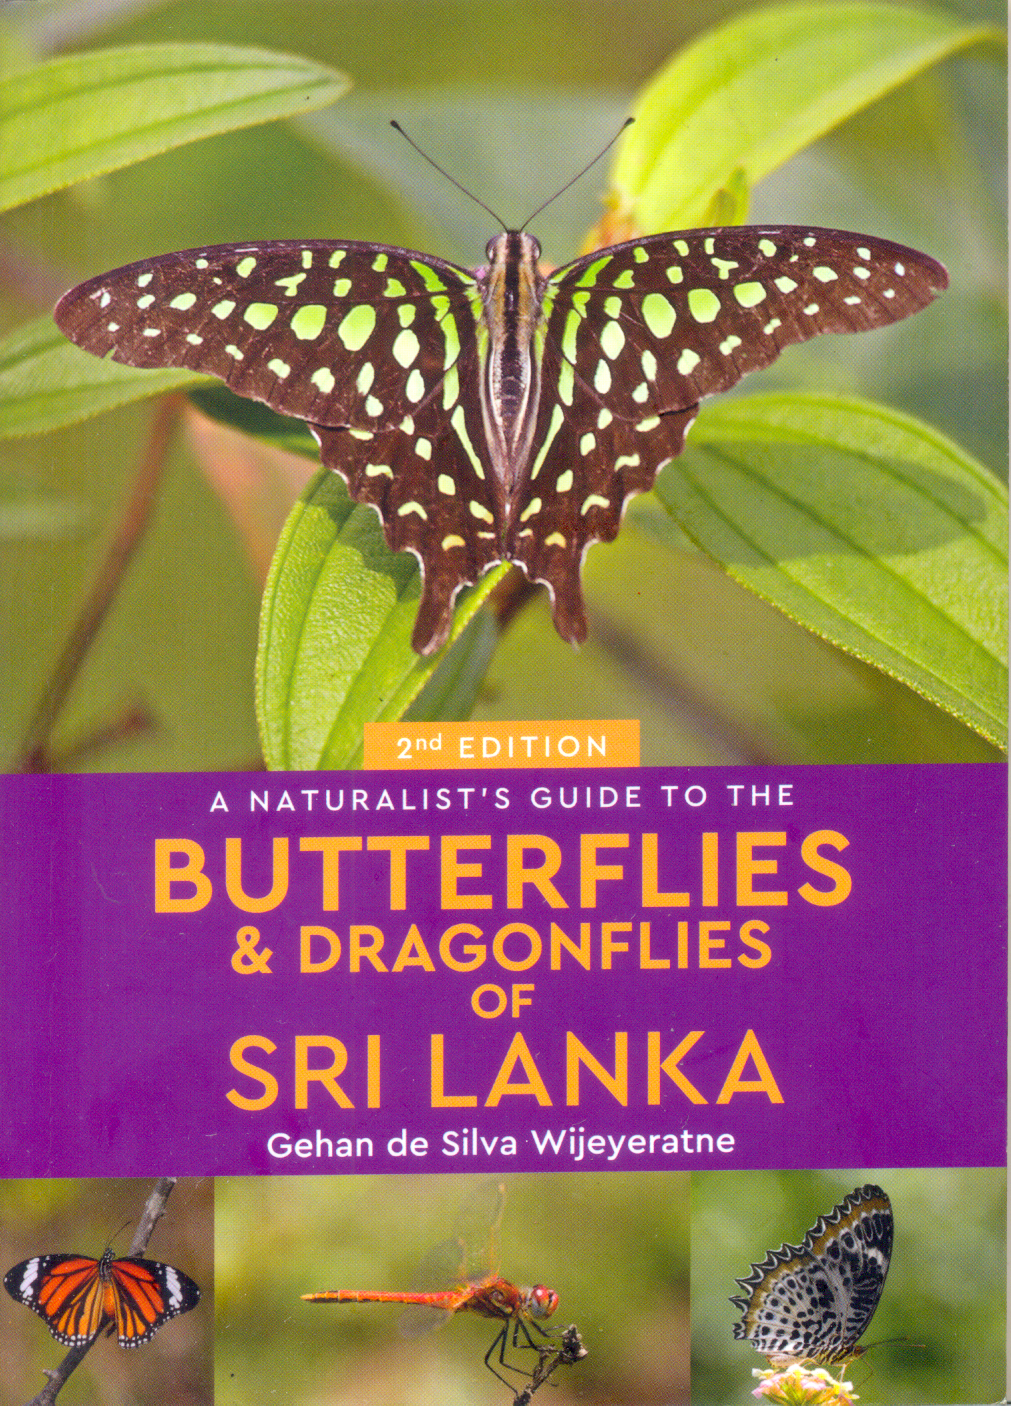 Naturalists Guide To The Butterflies & Dragonflies Of Sri Lanka